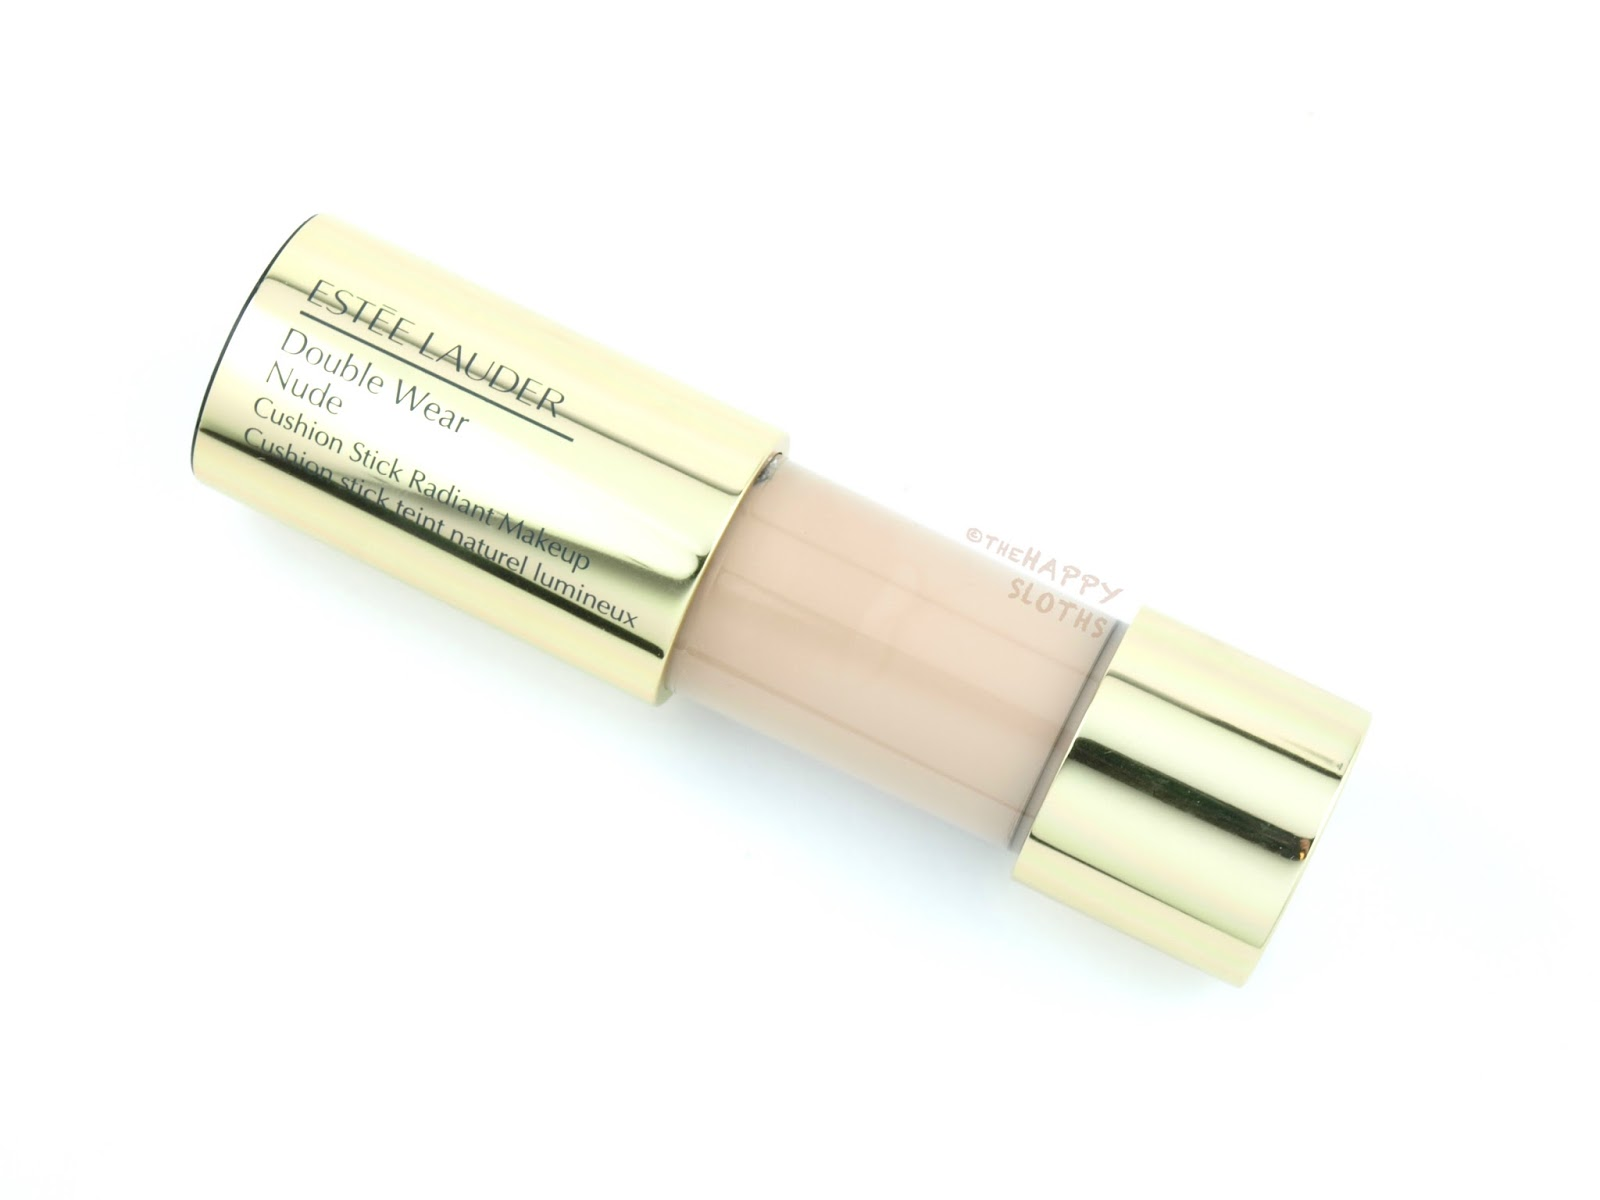 Estee Lauder Double Wear Nude Cushion Stick Review and Swatches